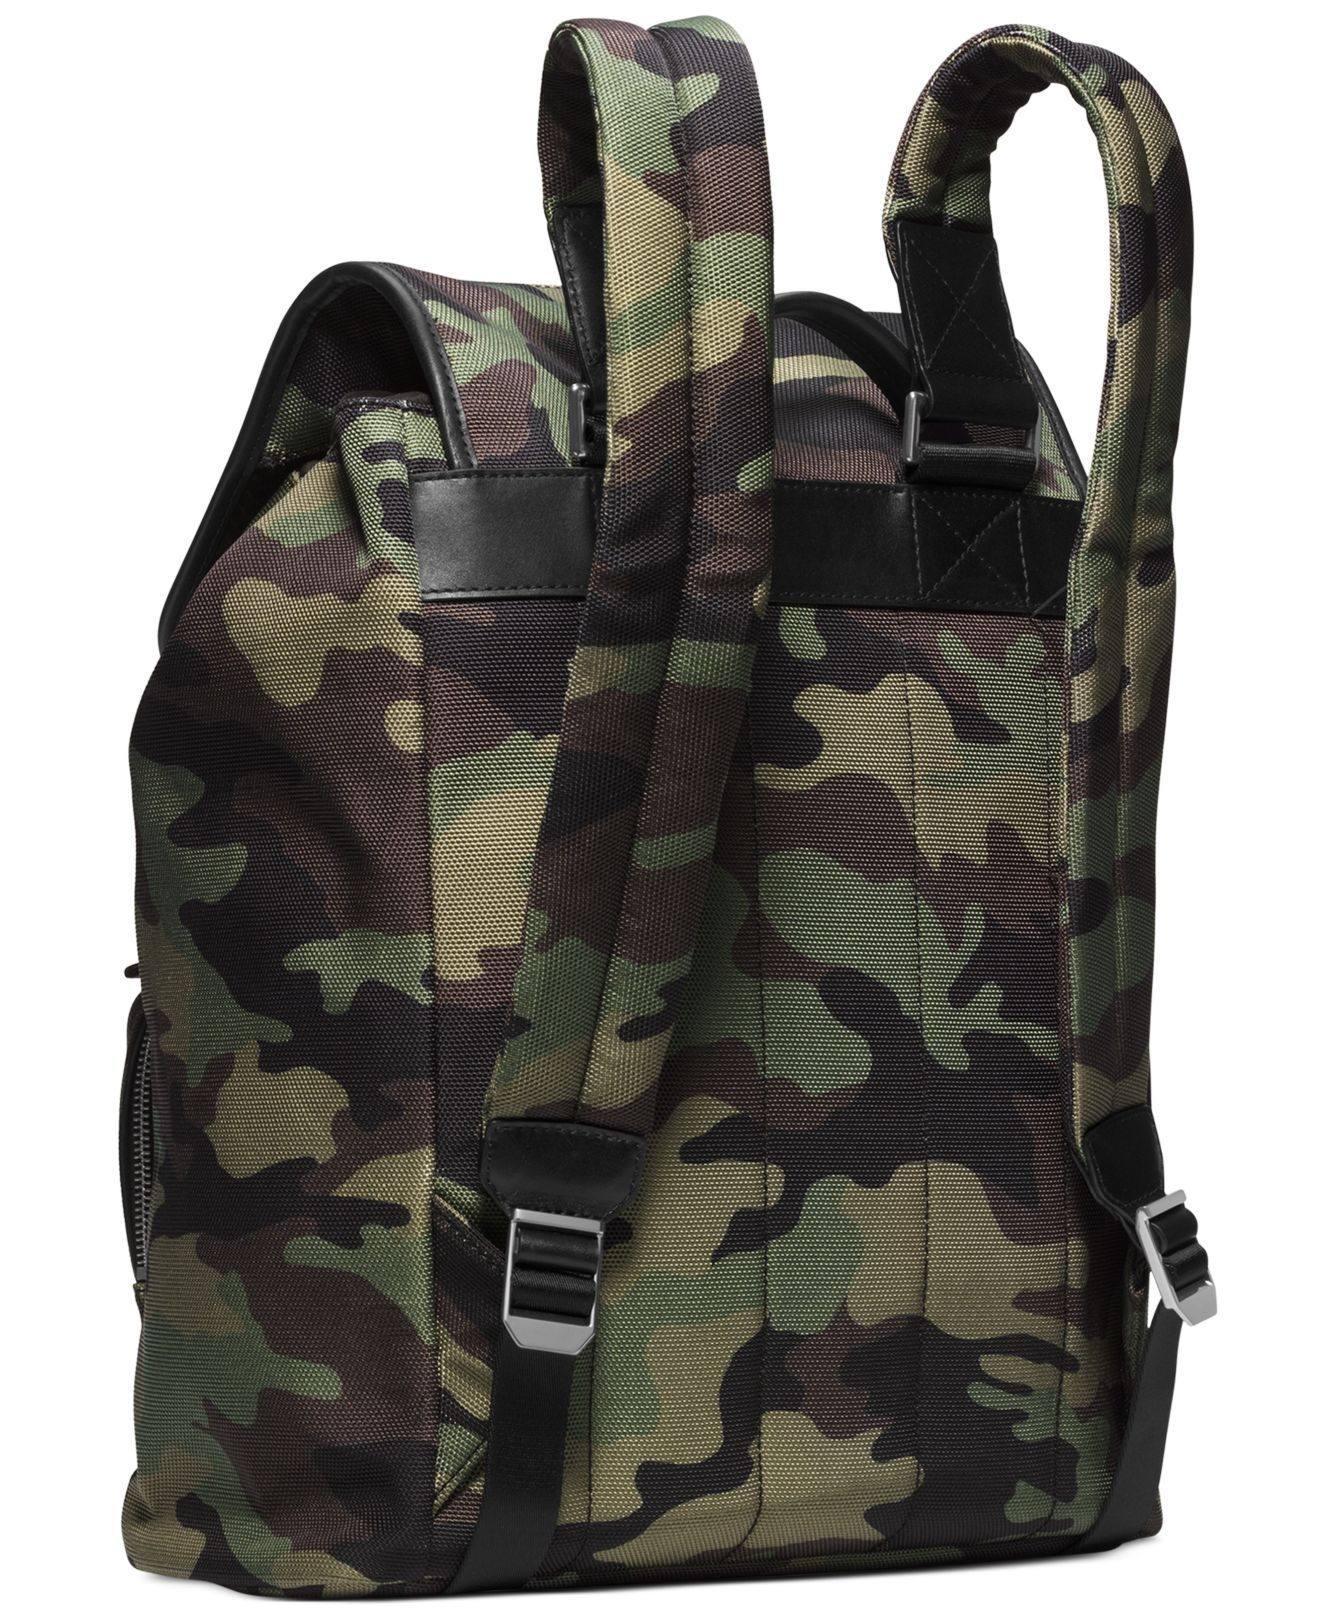 b2123a69a0da ... Lyst Michael kors Windsor Large Camo Backpack in Green for Men ...